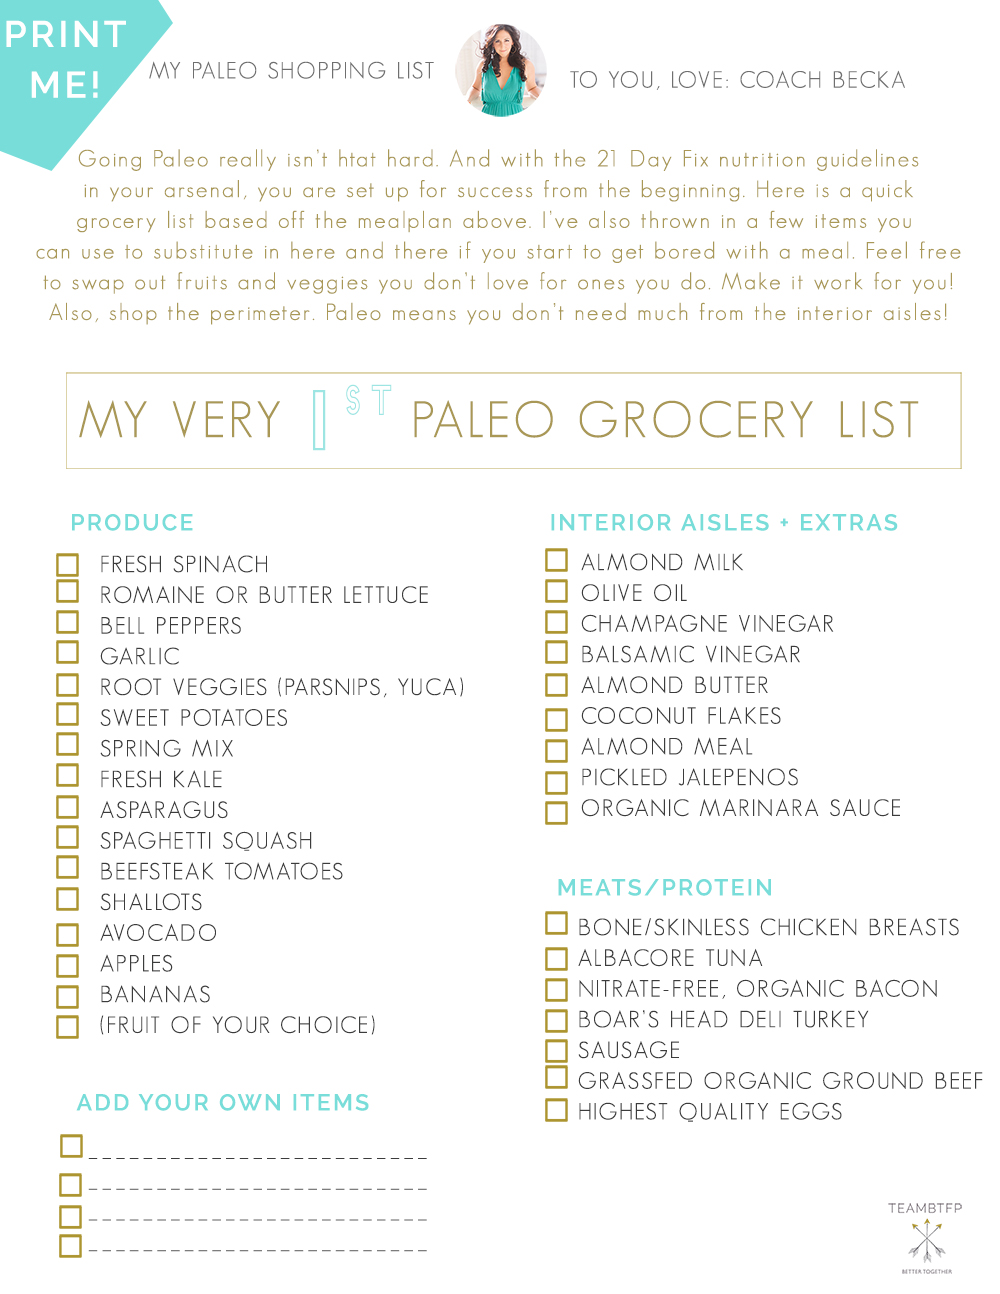 How to go paleo with the 21 day fix mealplan and shopping list teambtfp21dayfixpaleogrocerylist malvernweather Choice Image